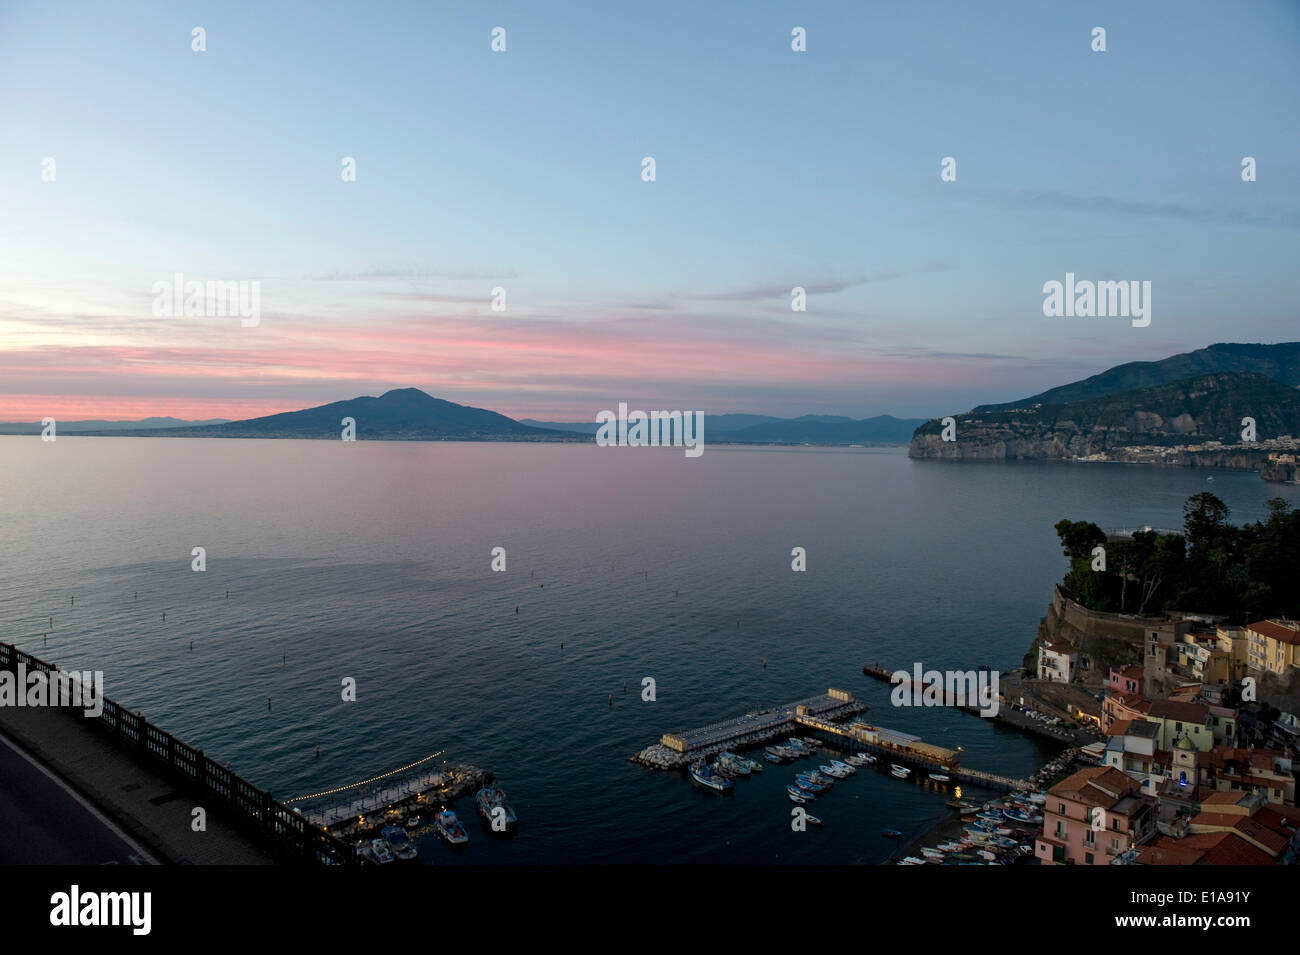 Red sky behind Mount Vesuvius, an active volcano, viewed across the Bay of Naples from Sorrento at sunset - Stock Image